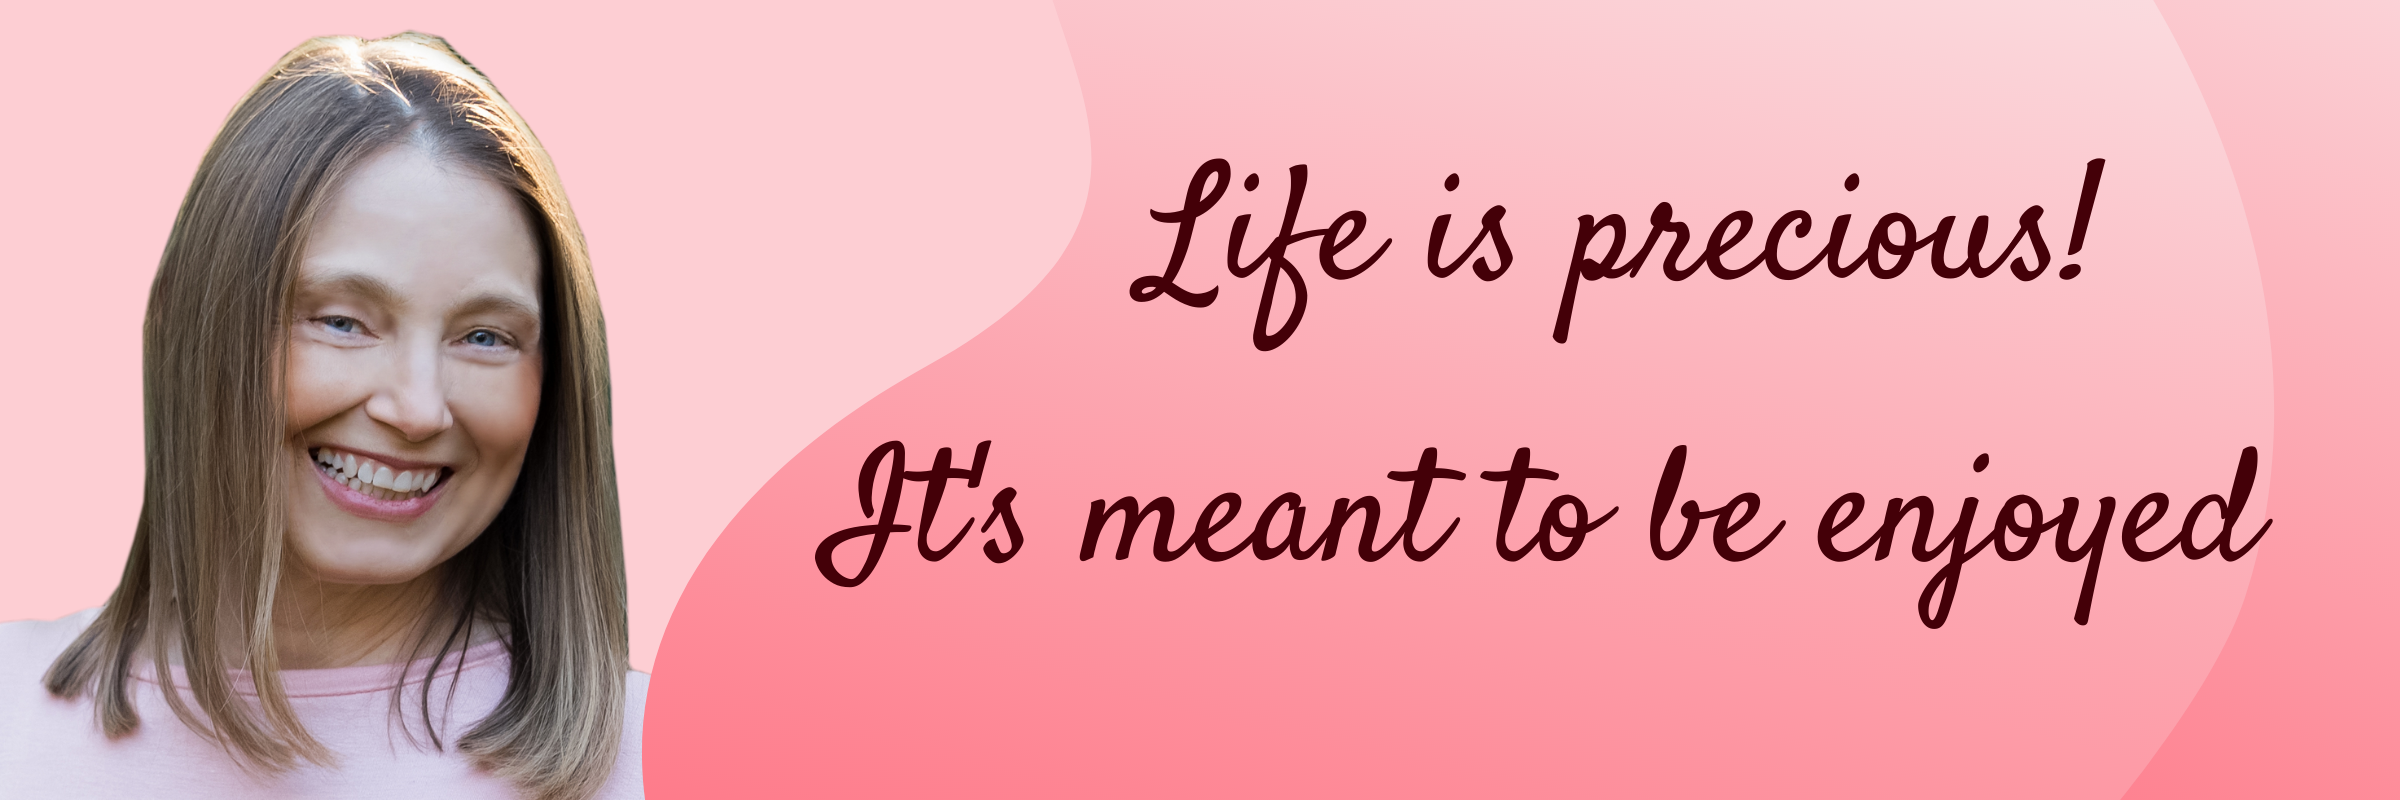 Life is precious! It's meant to be enjoyed.